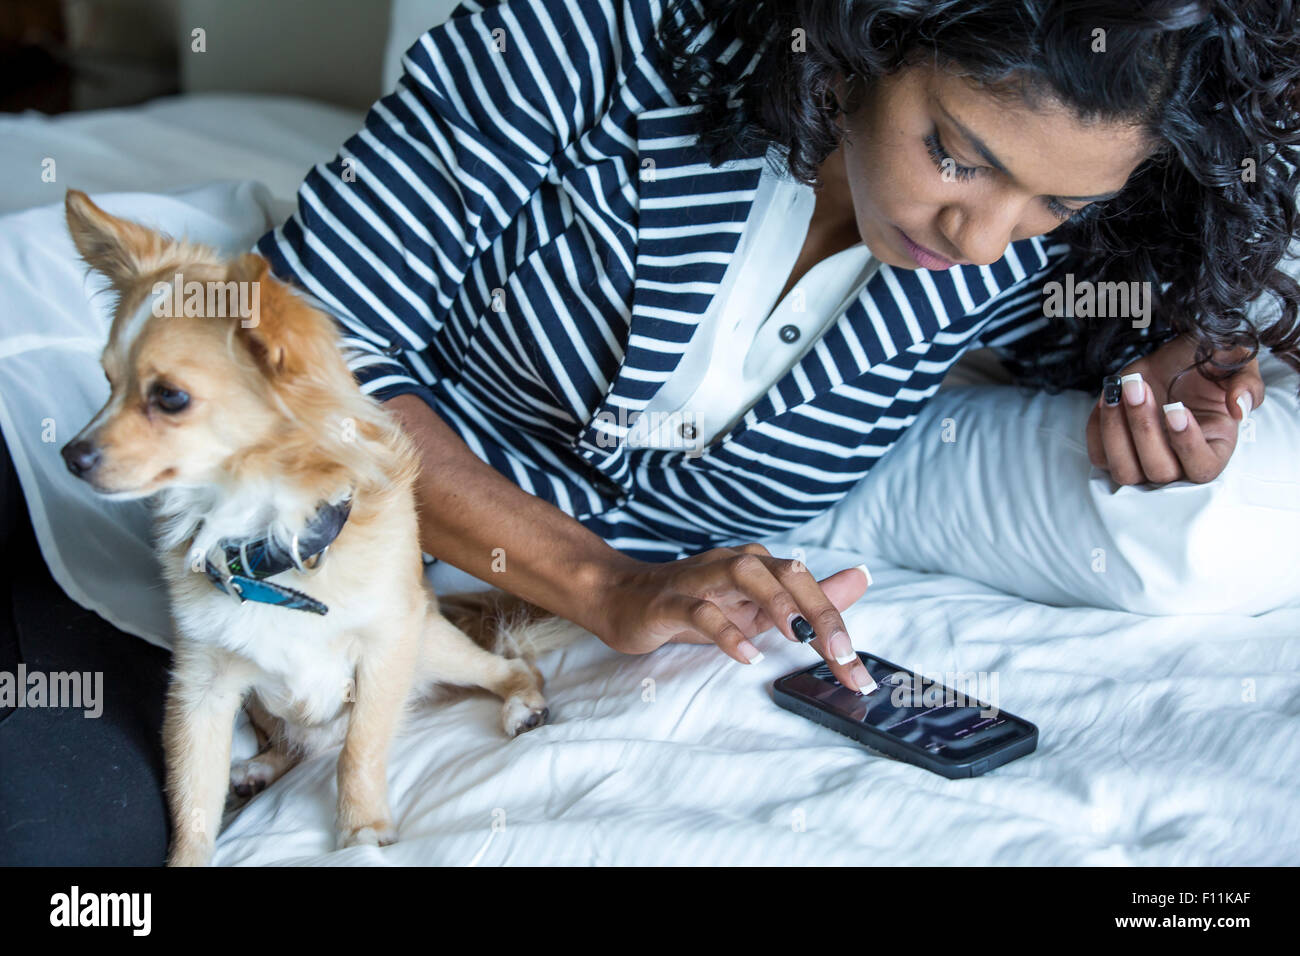 Mixed race woman using cell phone with dog on bed Stock Photo